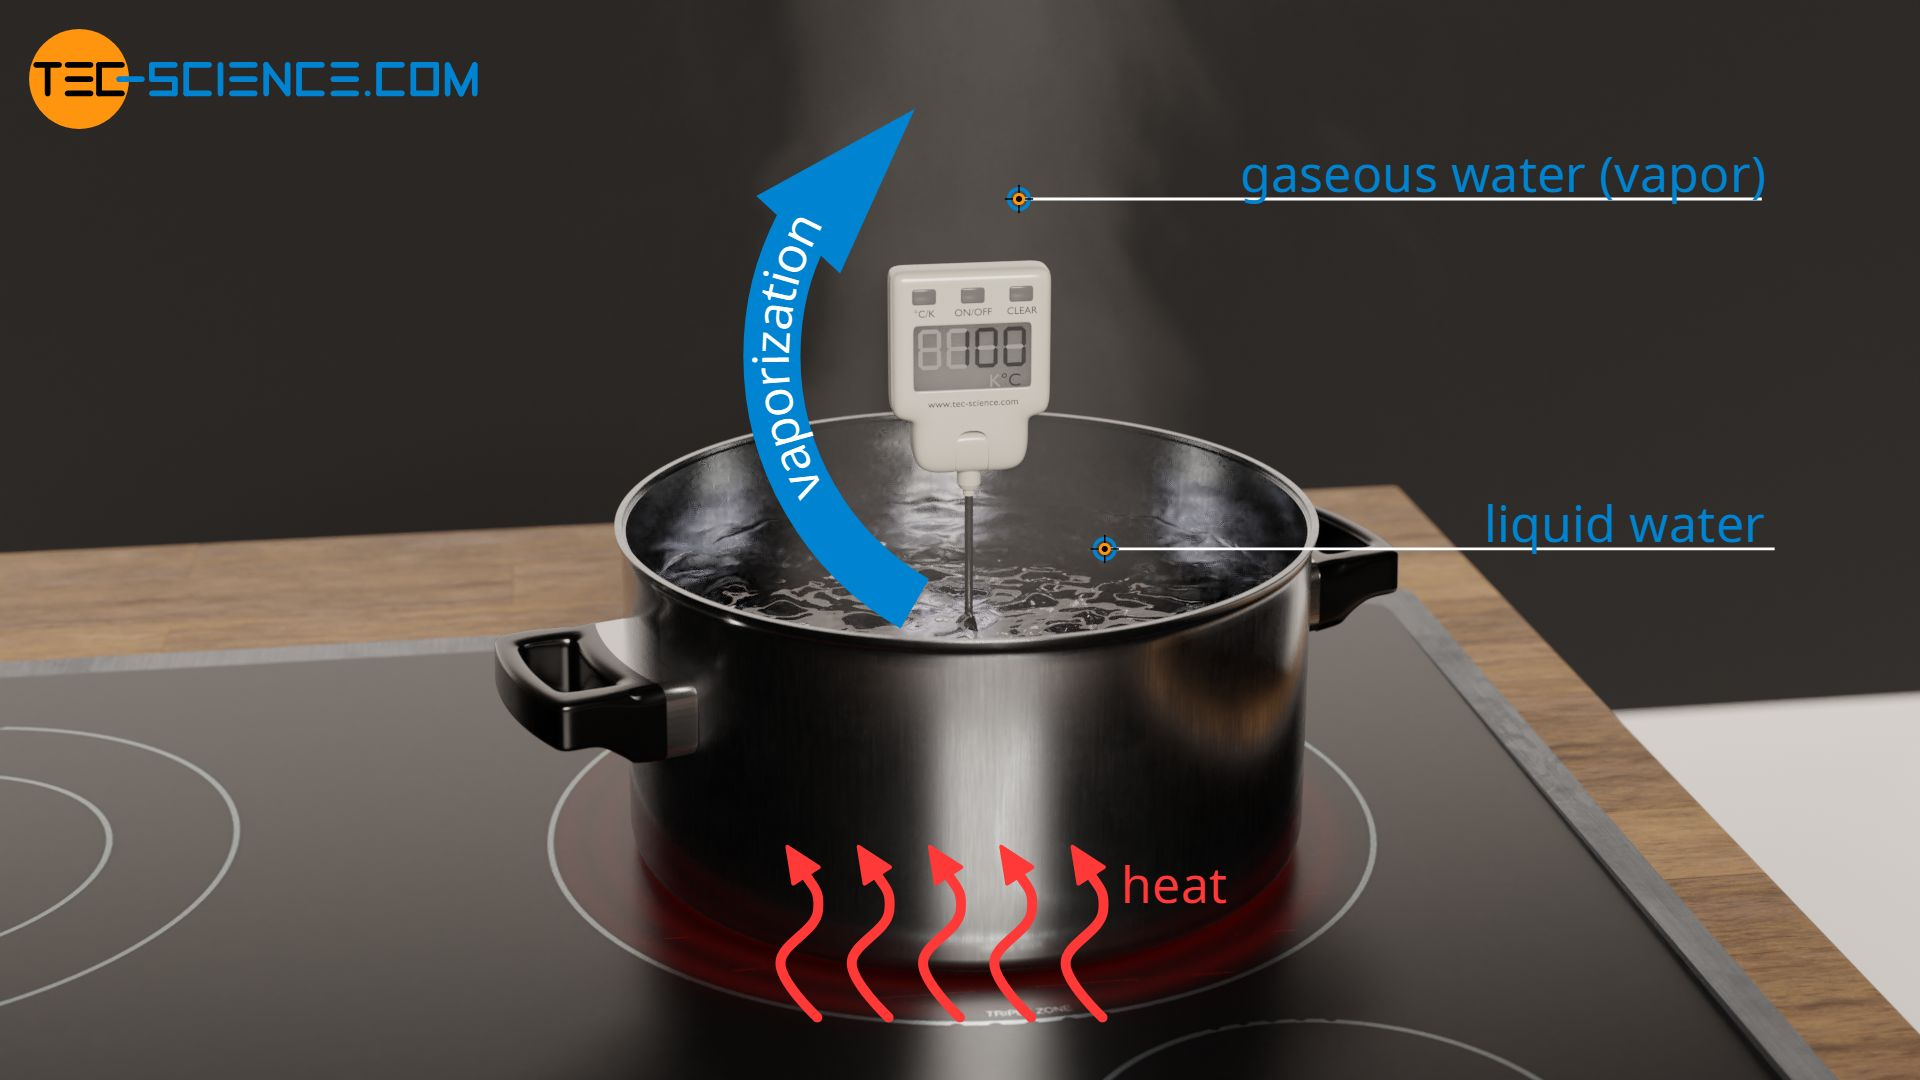 Vaporization of water in a pot on a hotplate